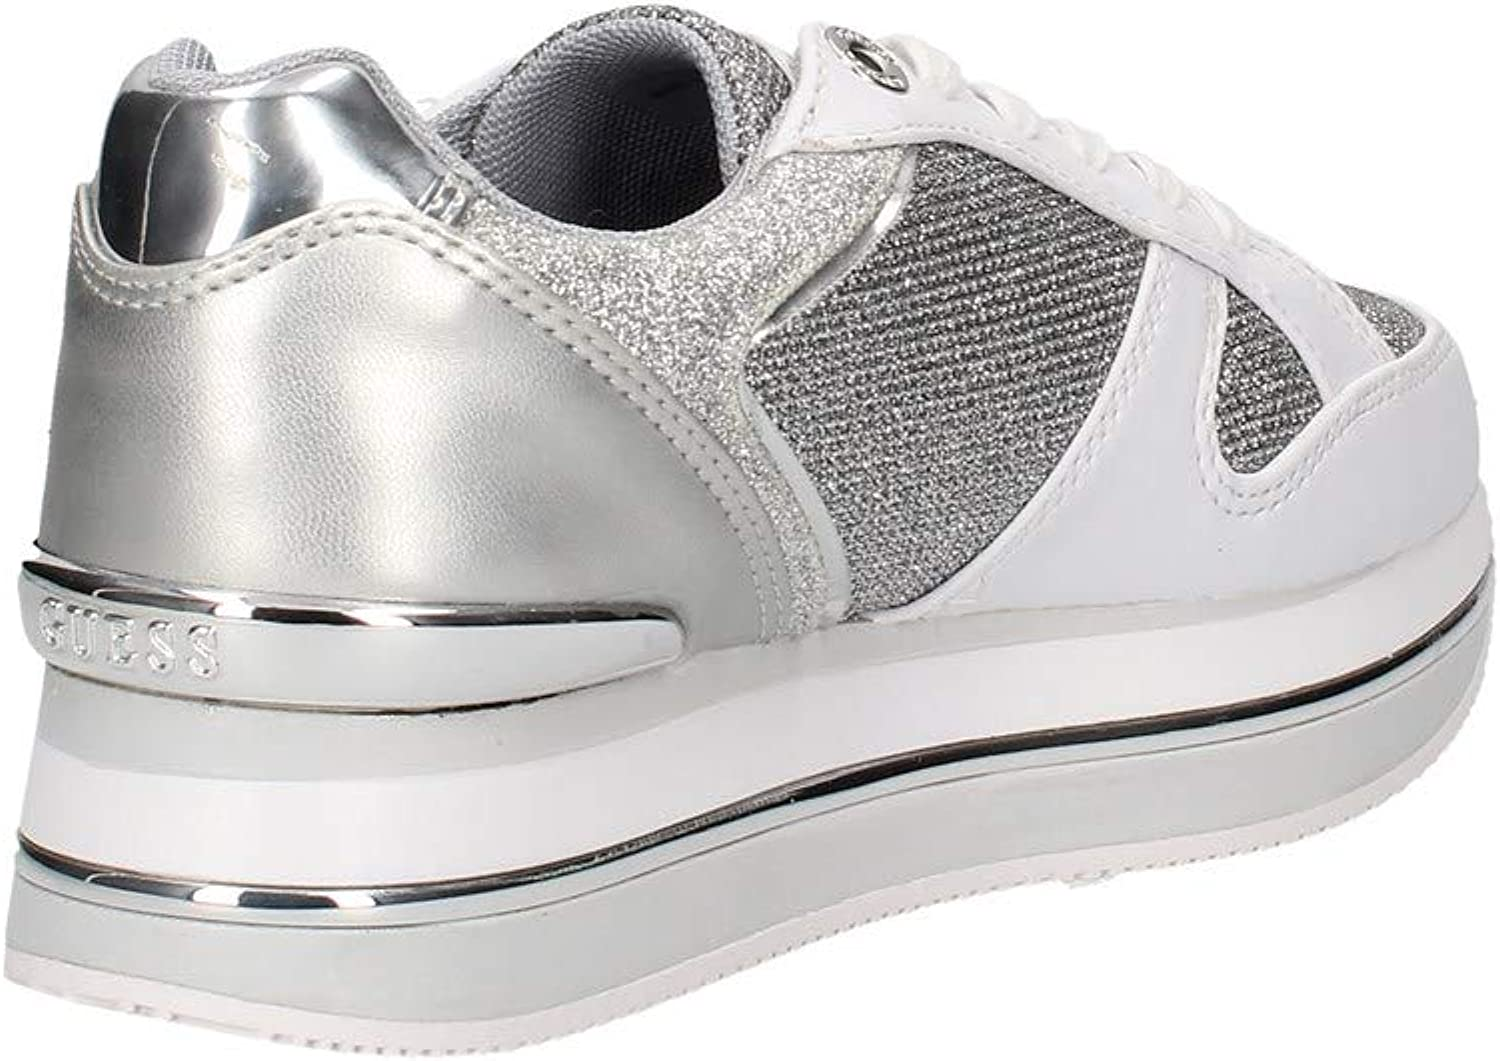 Guess FL5DLY Sneakers in Eco Pelle da Donna Animalier